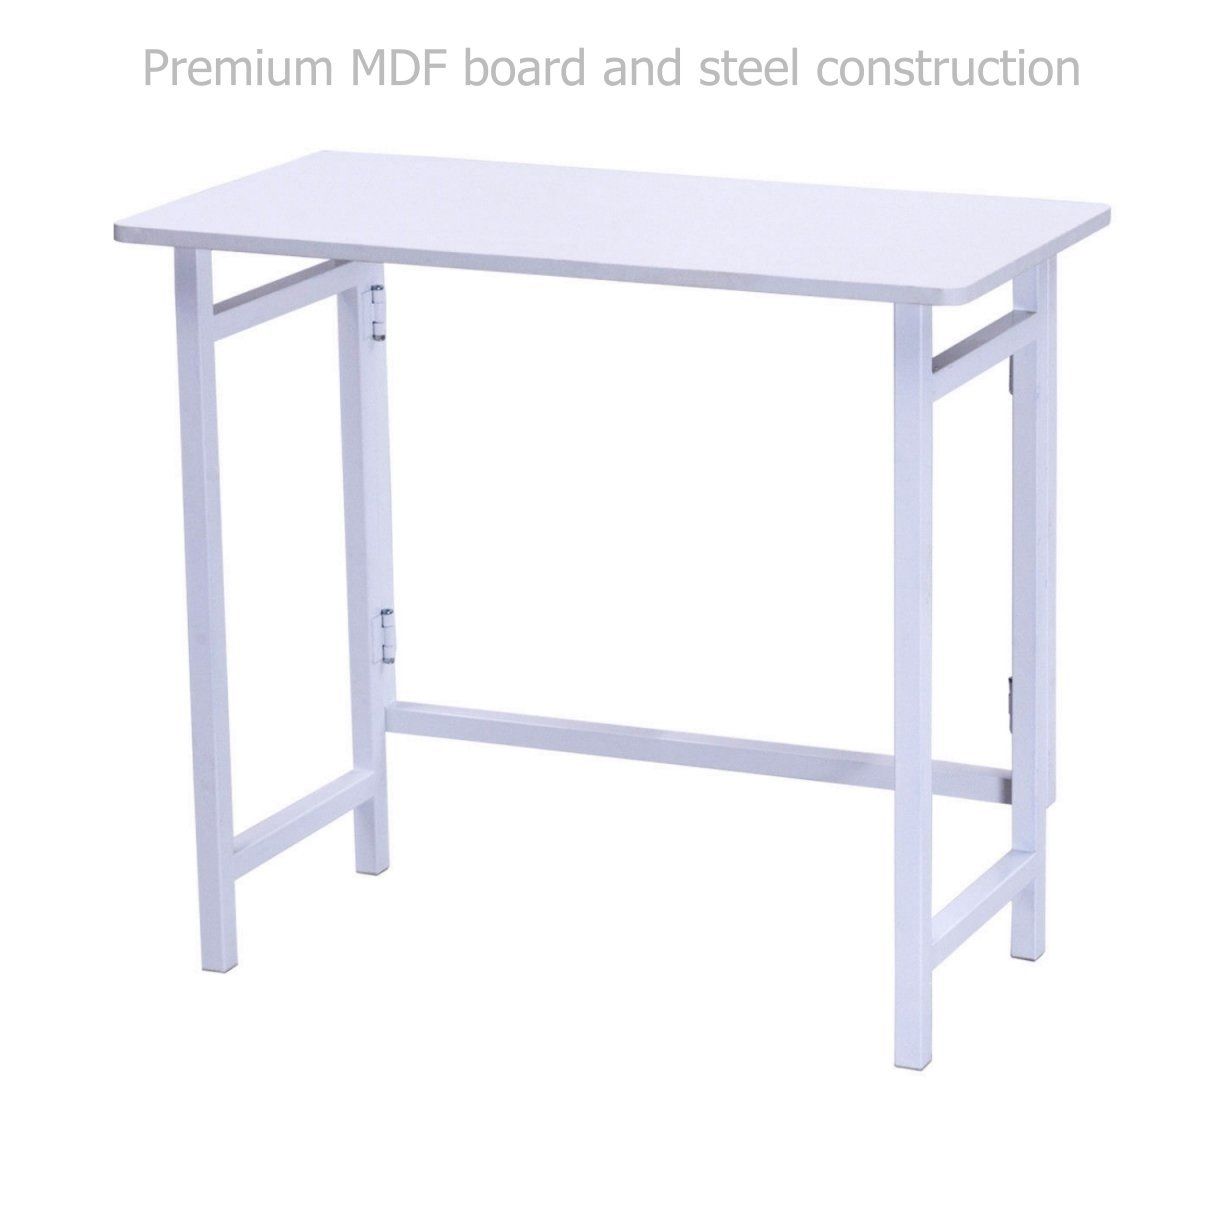 Modern Folding Table Laptop Computer Writing Multi-function Desk Durable MDF Board Powder Coated Steel Frame Home Office Furniture Decor #White1686